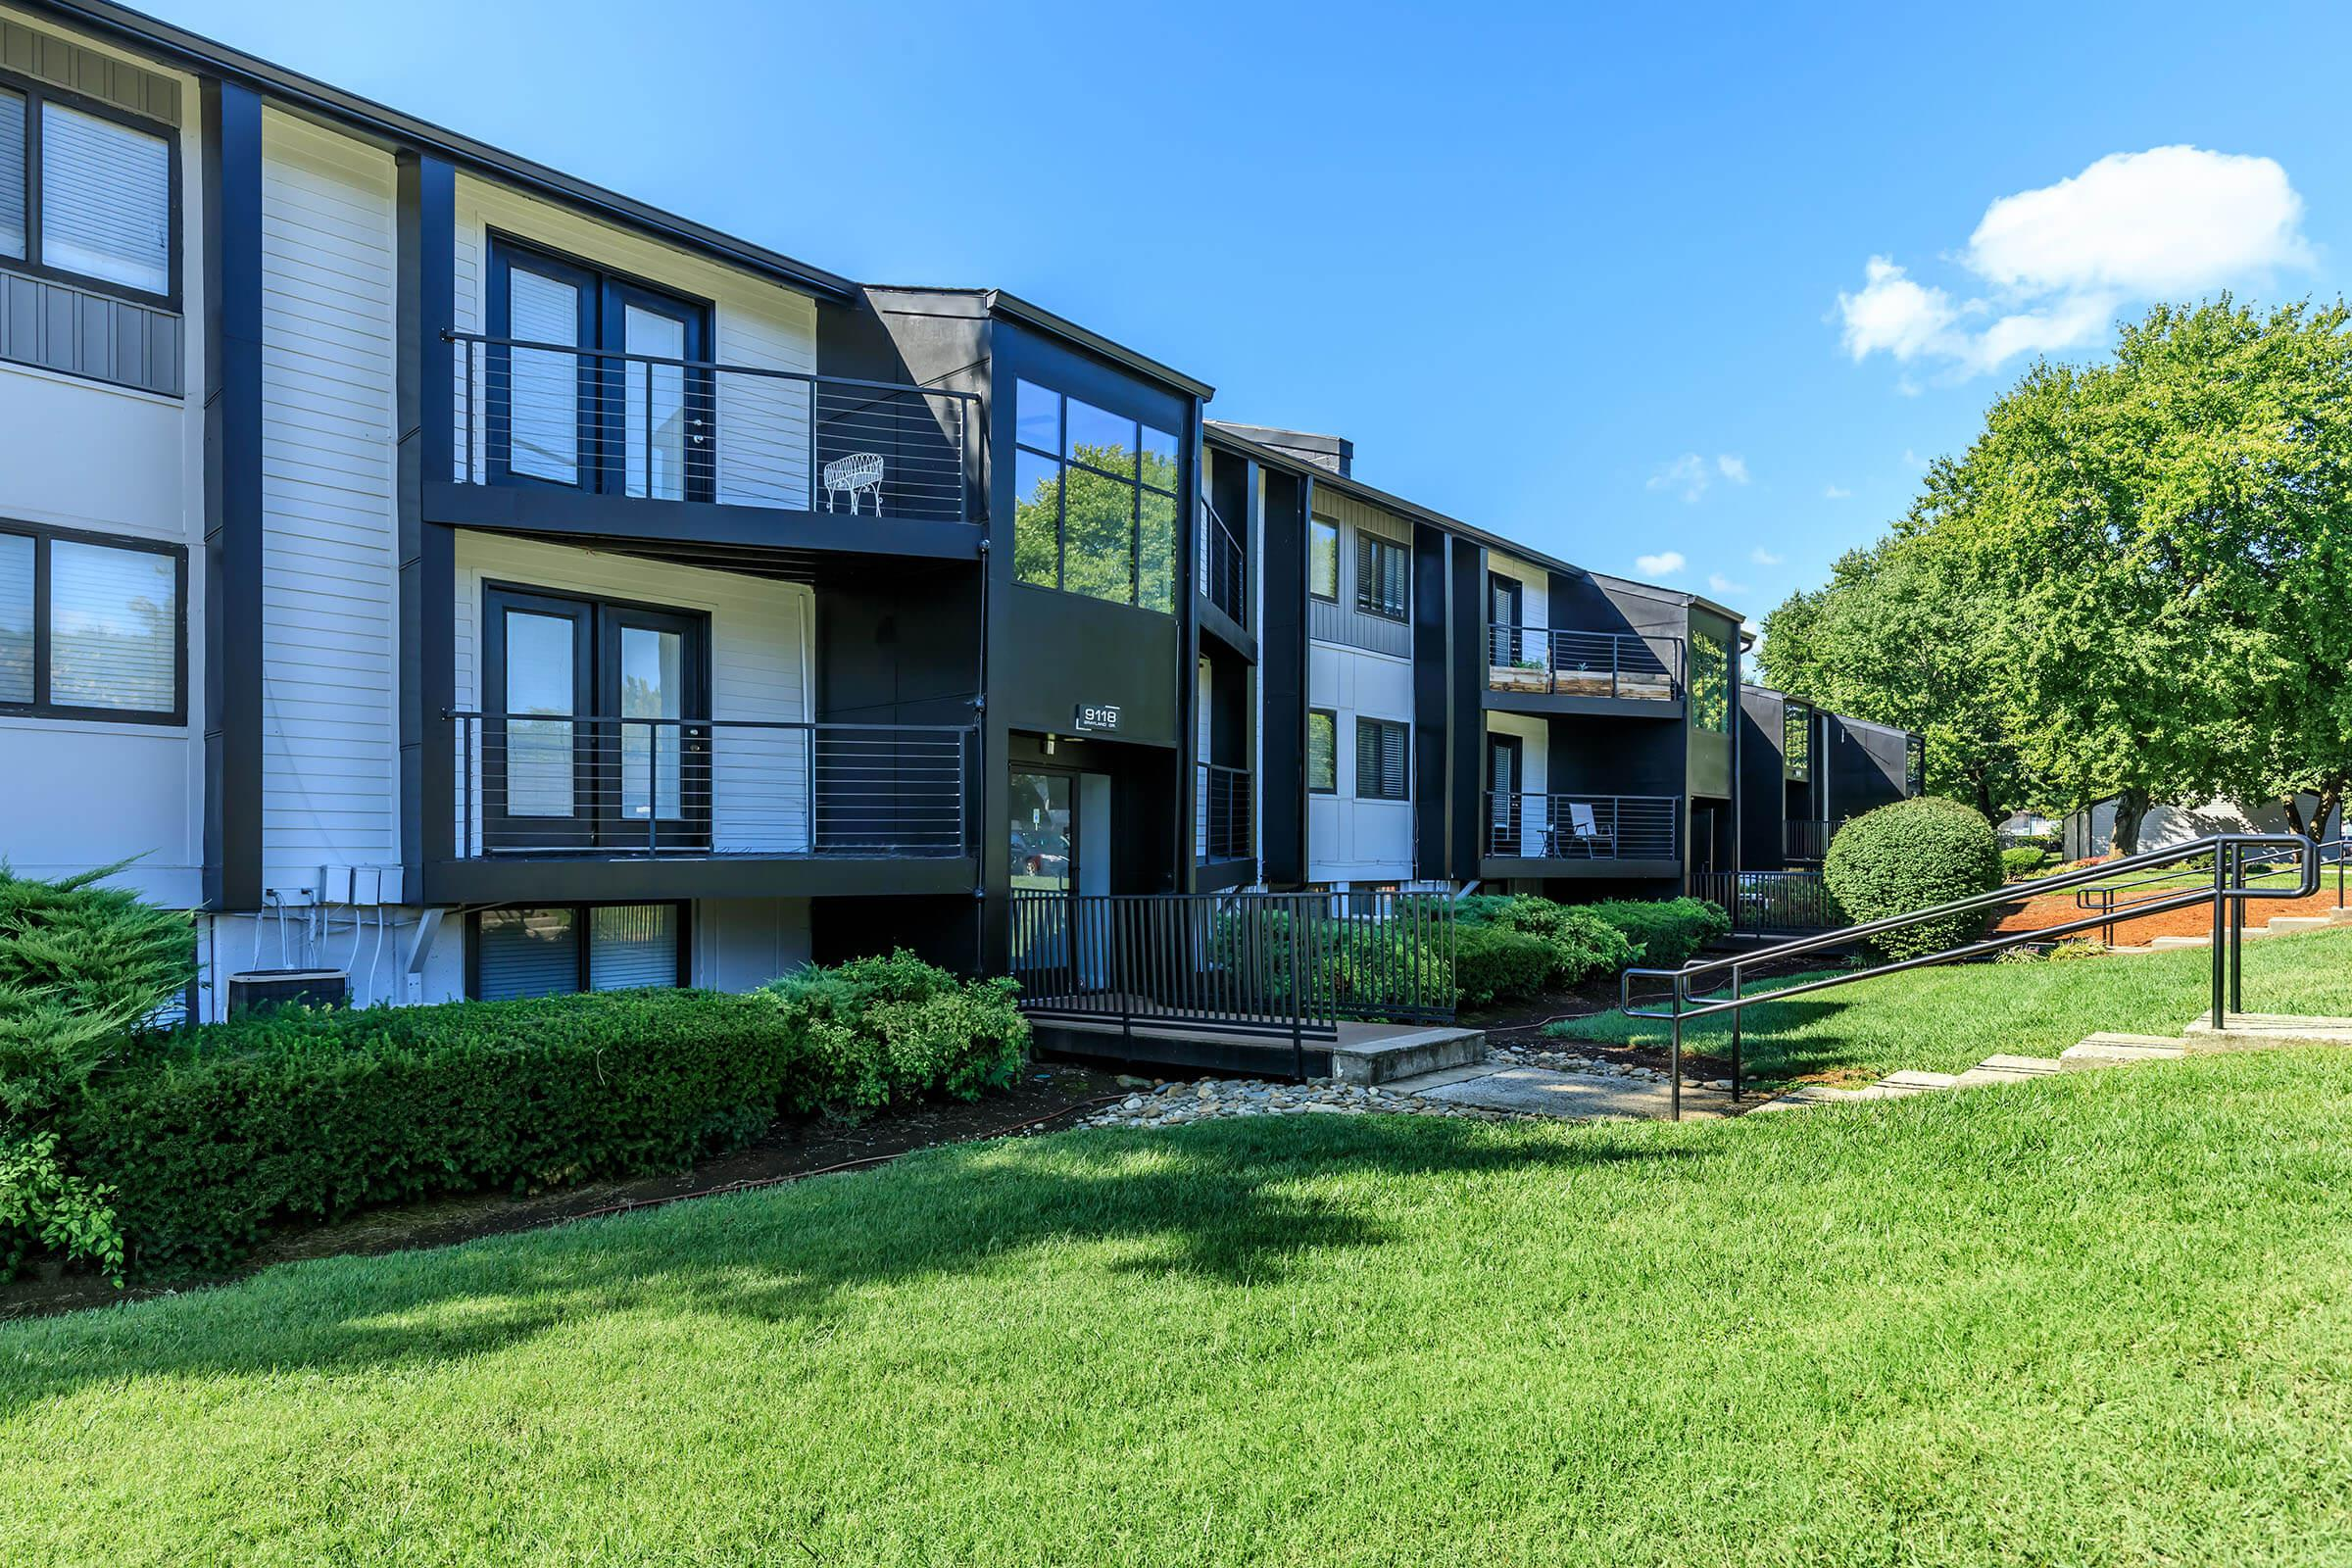 We Hope to See you Soon at Brendon Park Apartments